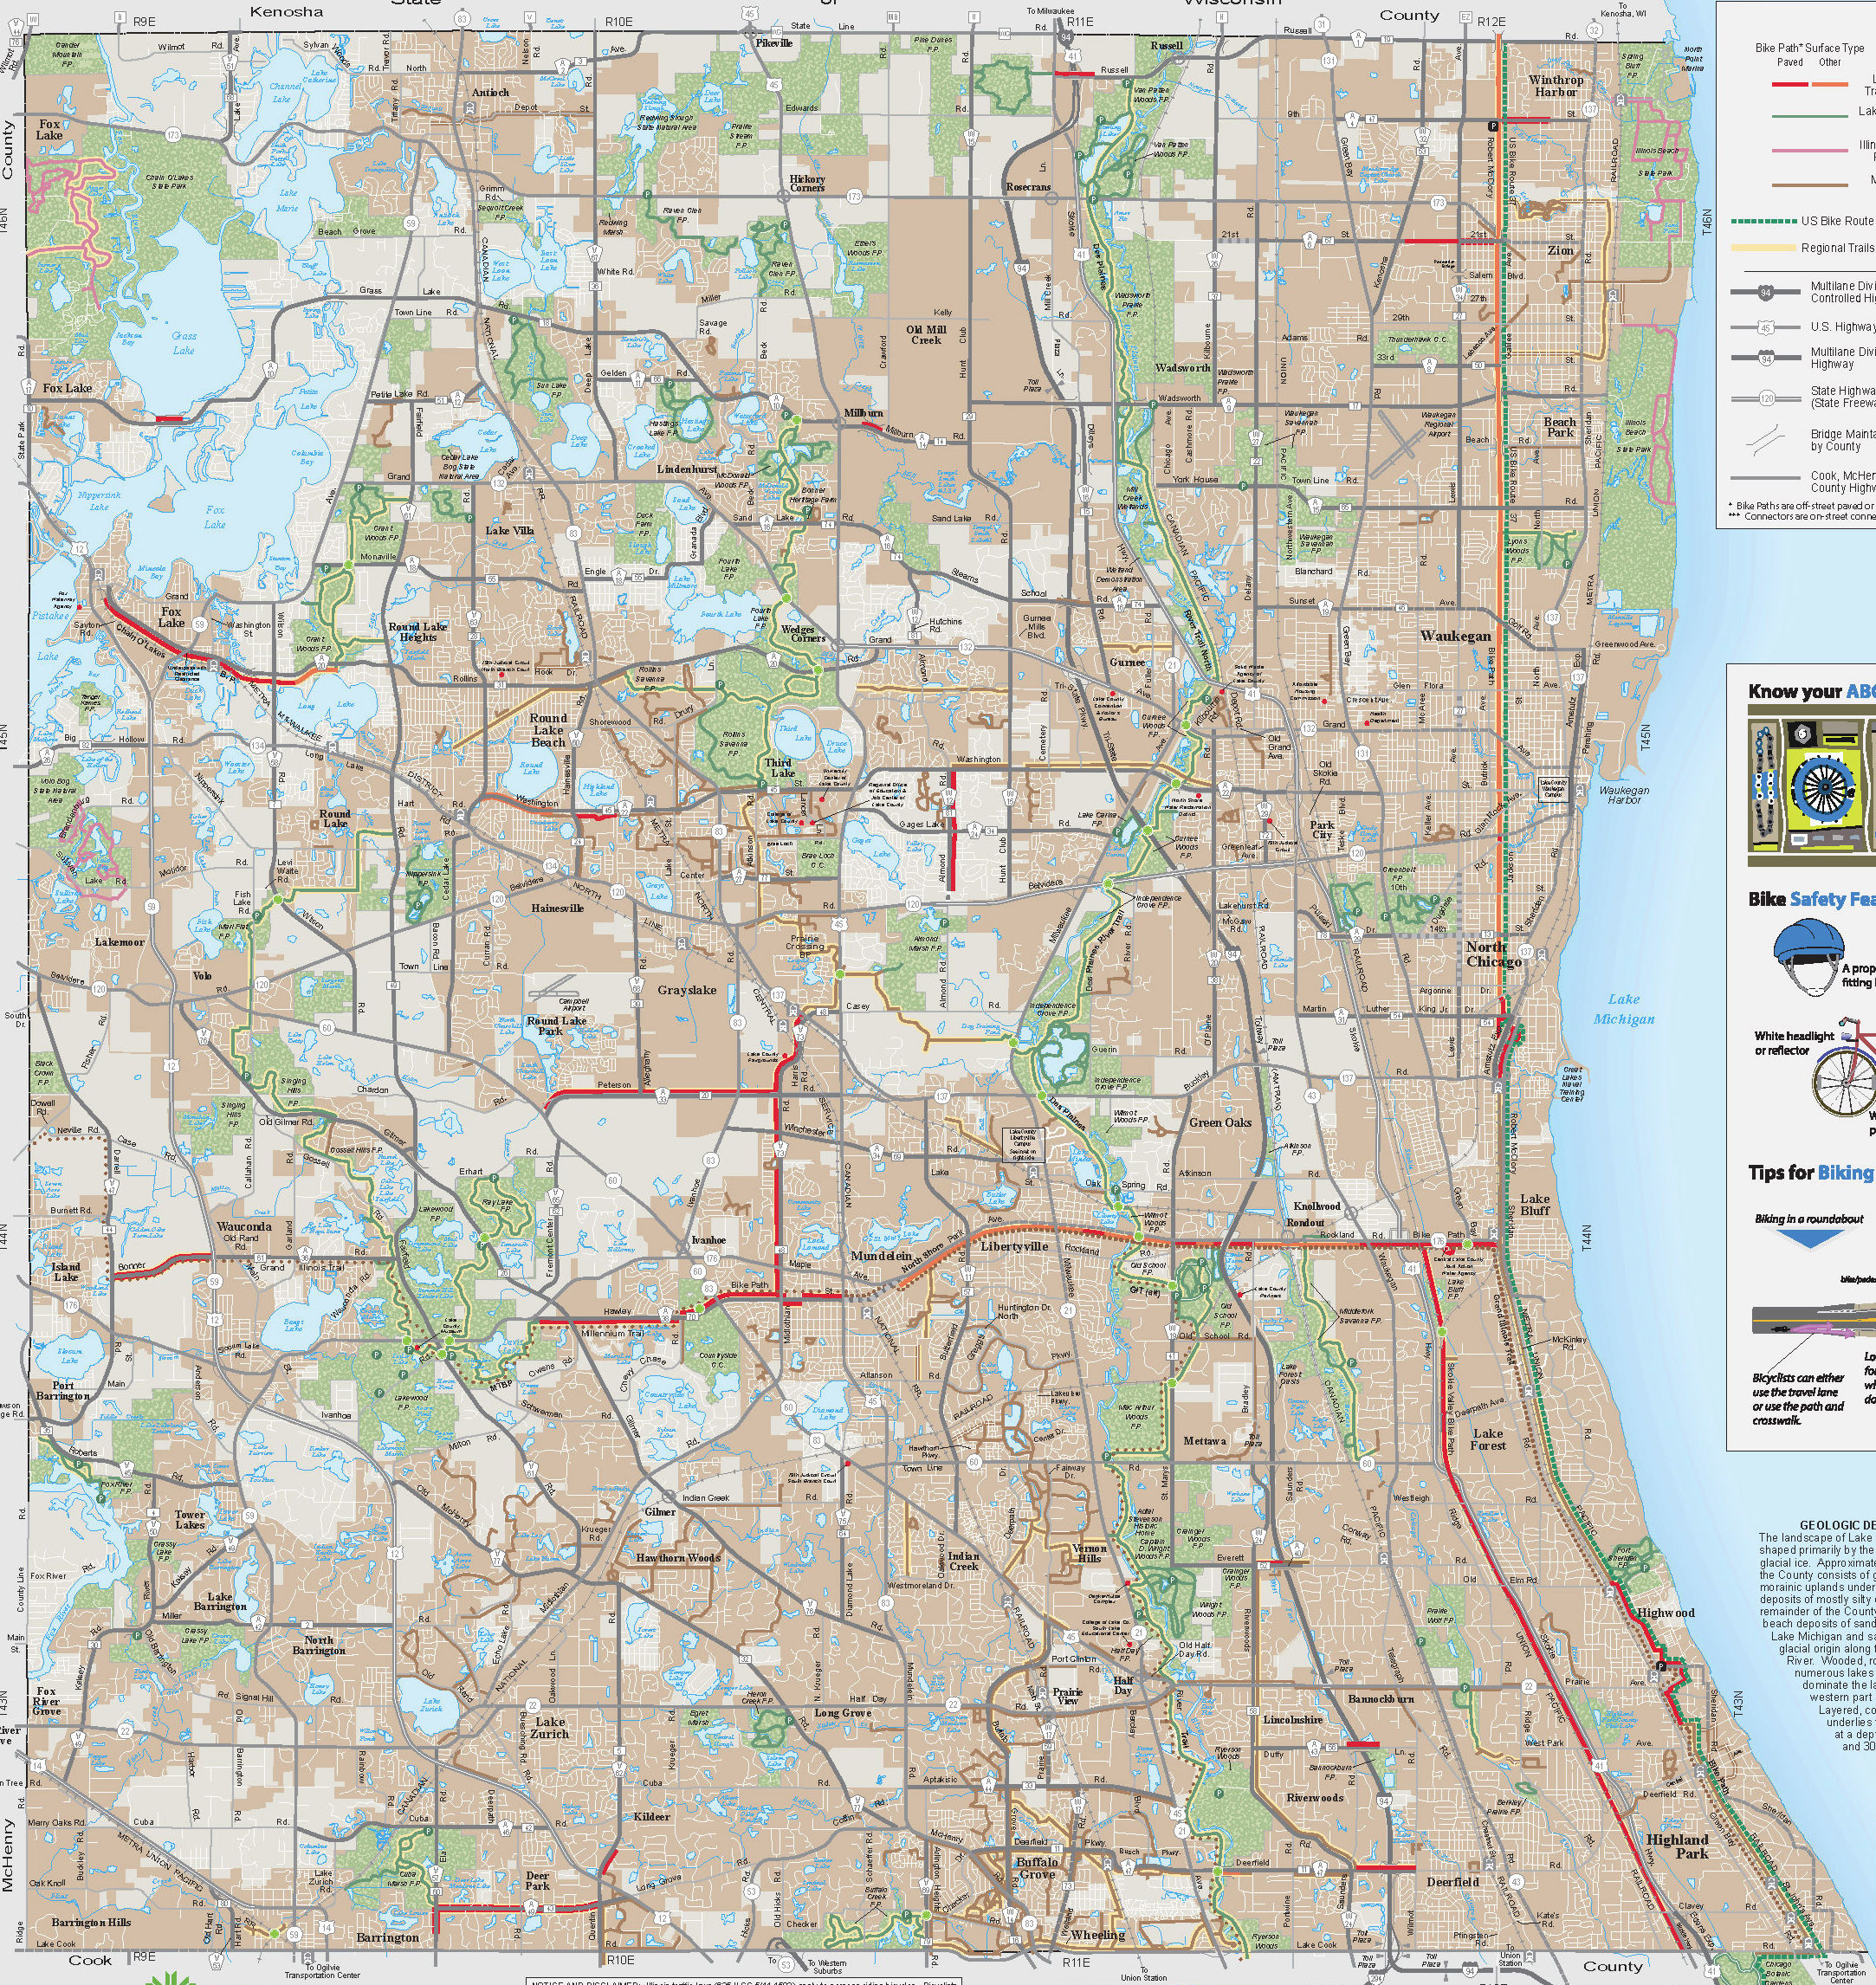 Lake County Bike Trails Map